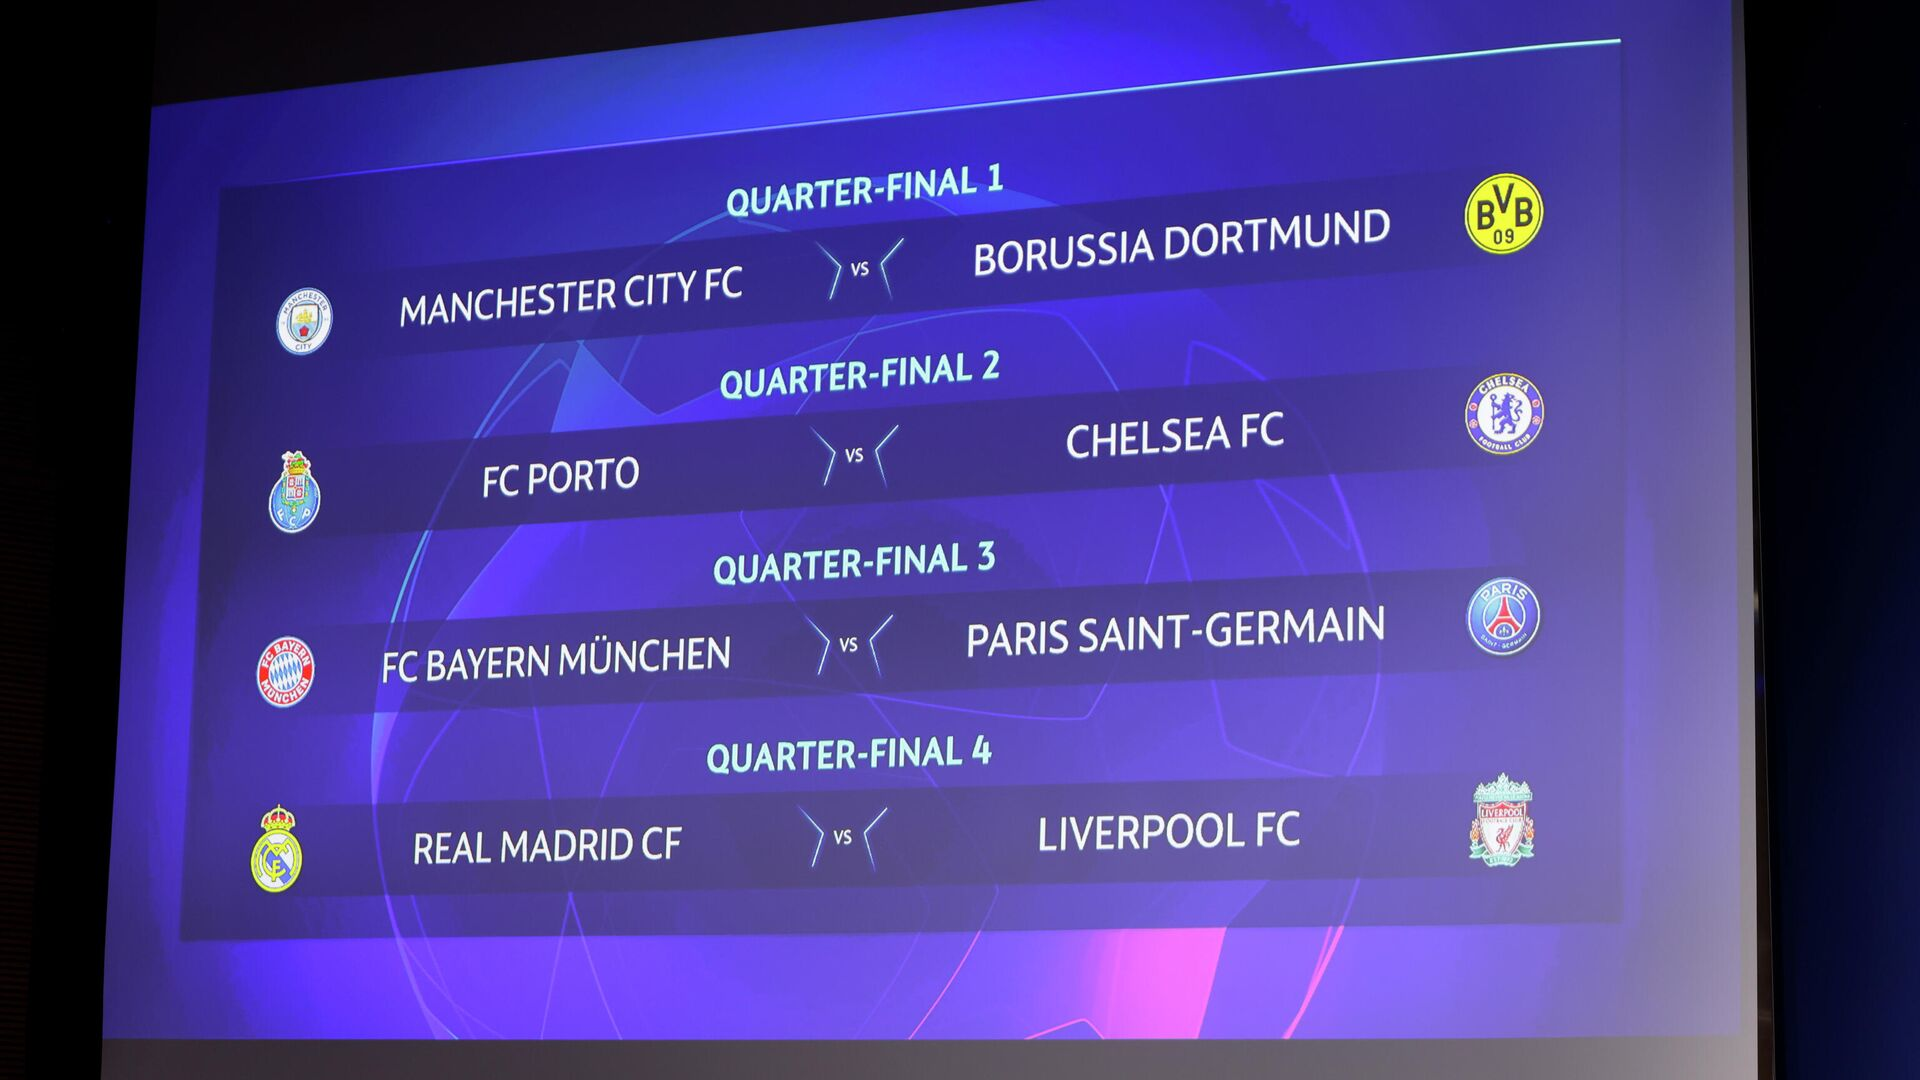 La tabla de cruces de los cuartos de final de la Champions League 2021 - Sputnik Mundo, 1920, 19.03.2021